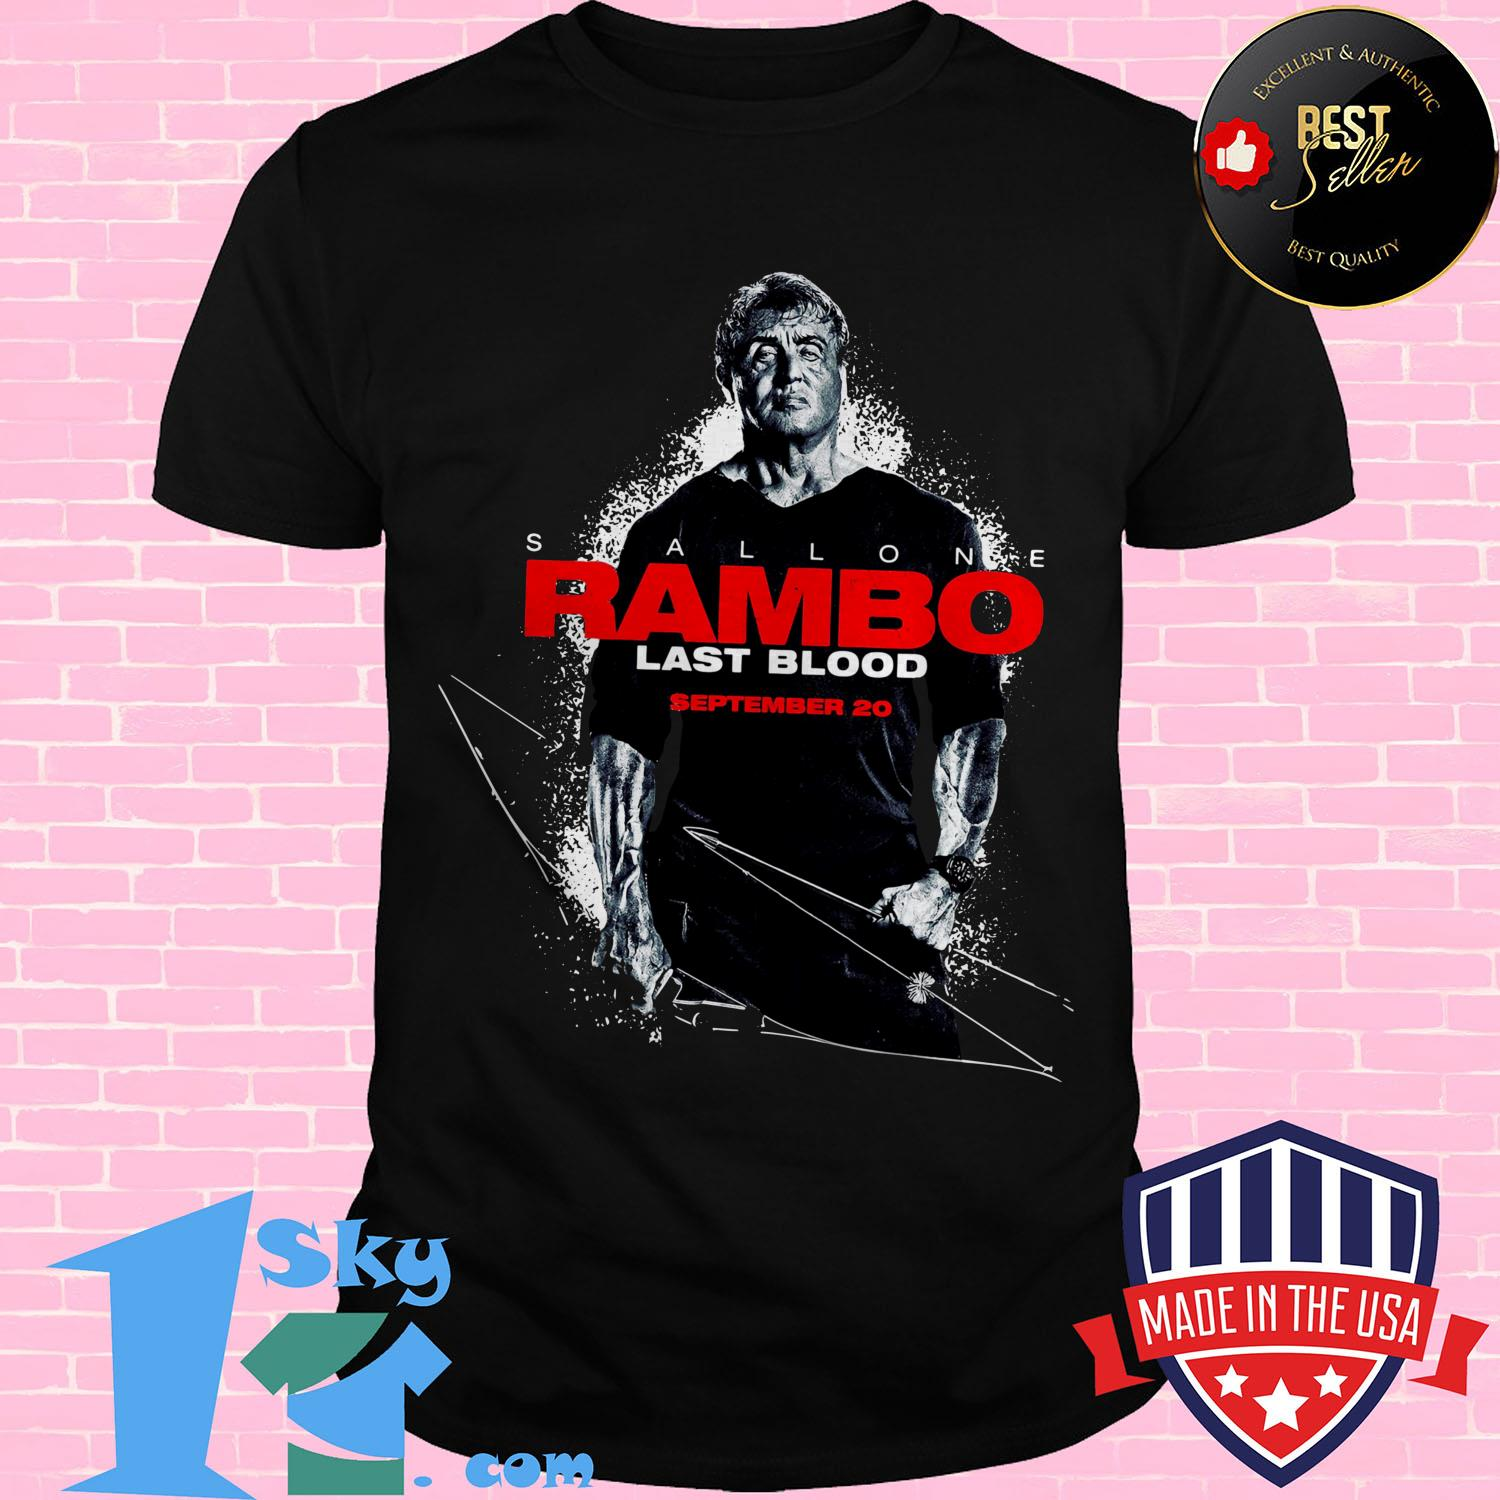 stallone rambo last blood september 20 ladies tee - Stallone Rambo Last Blood September 20 shirt